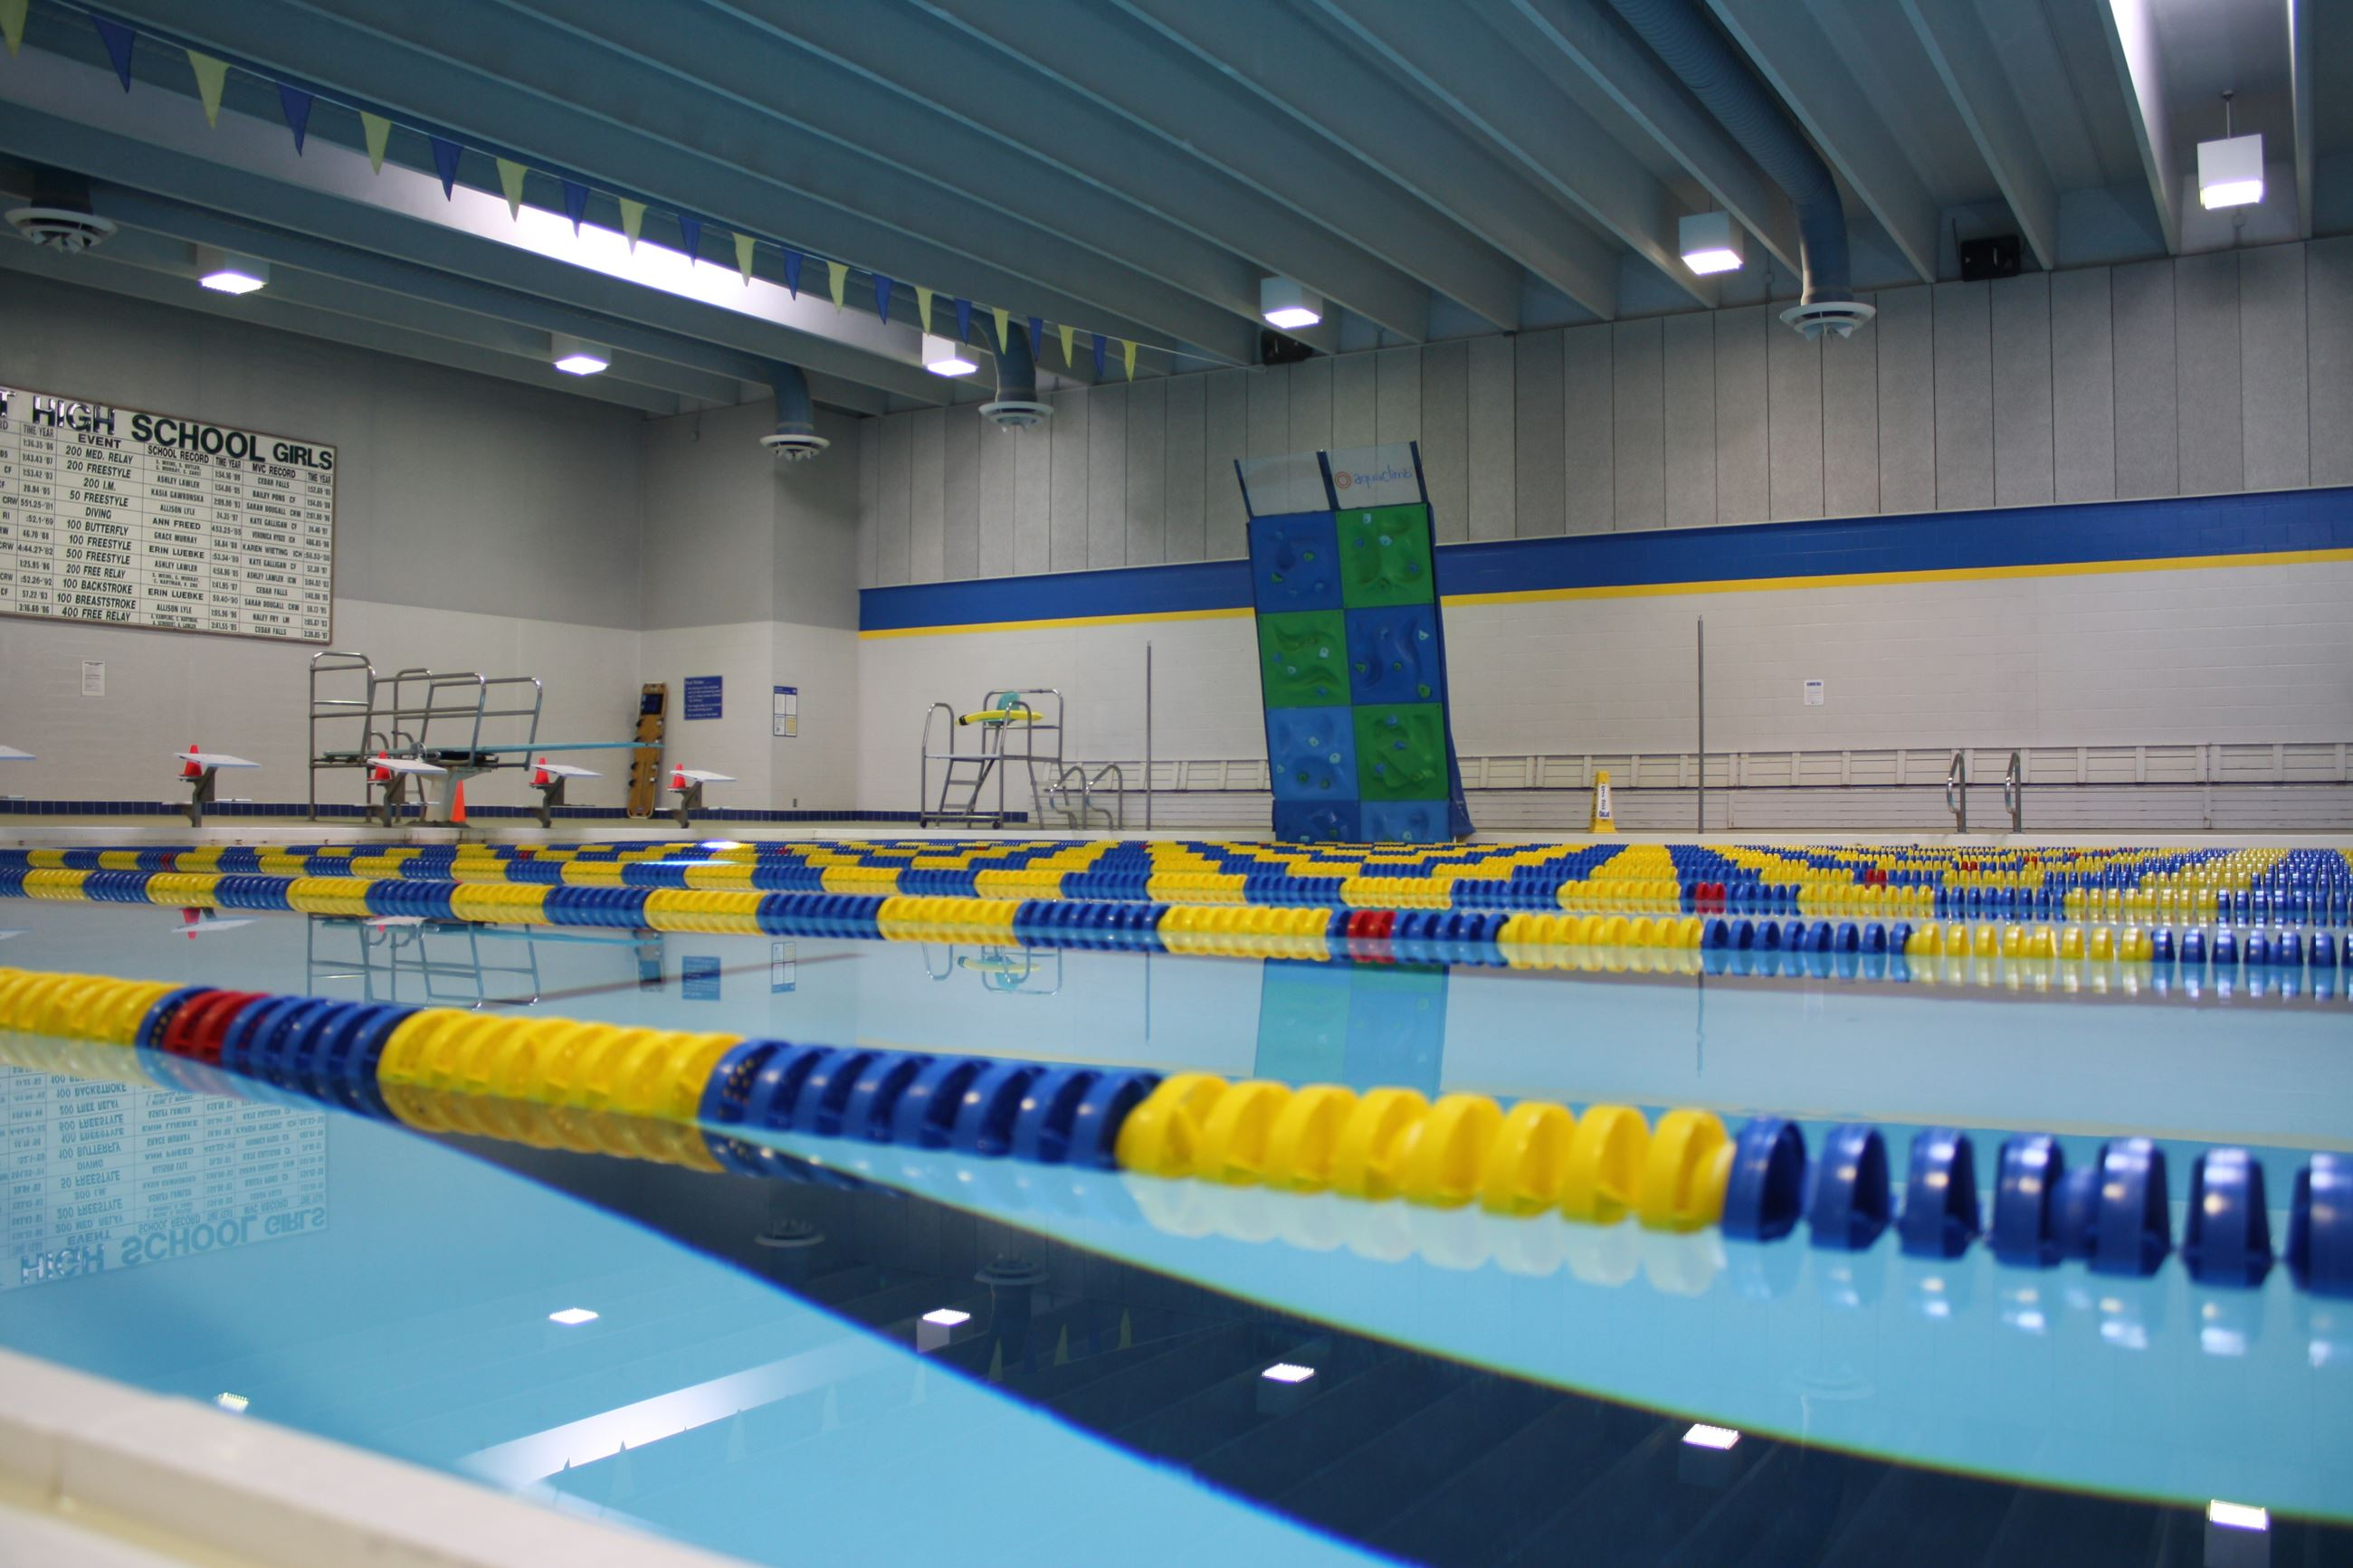 Indoor School Swimming Pool pools & swimming | coralville, ia - official website